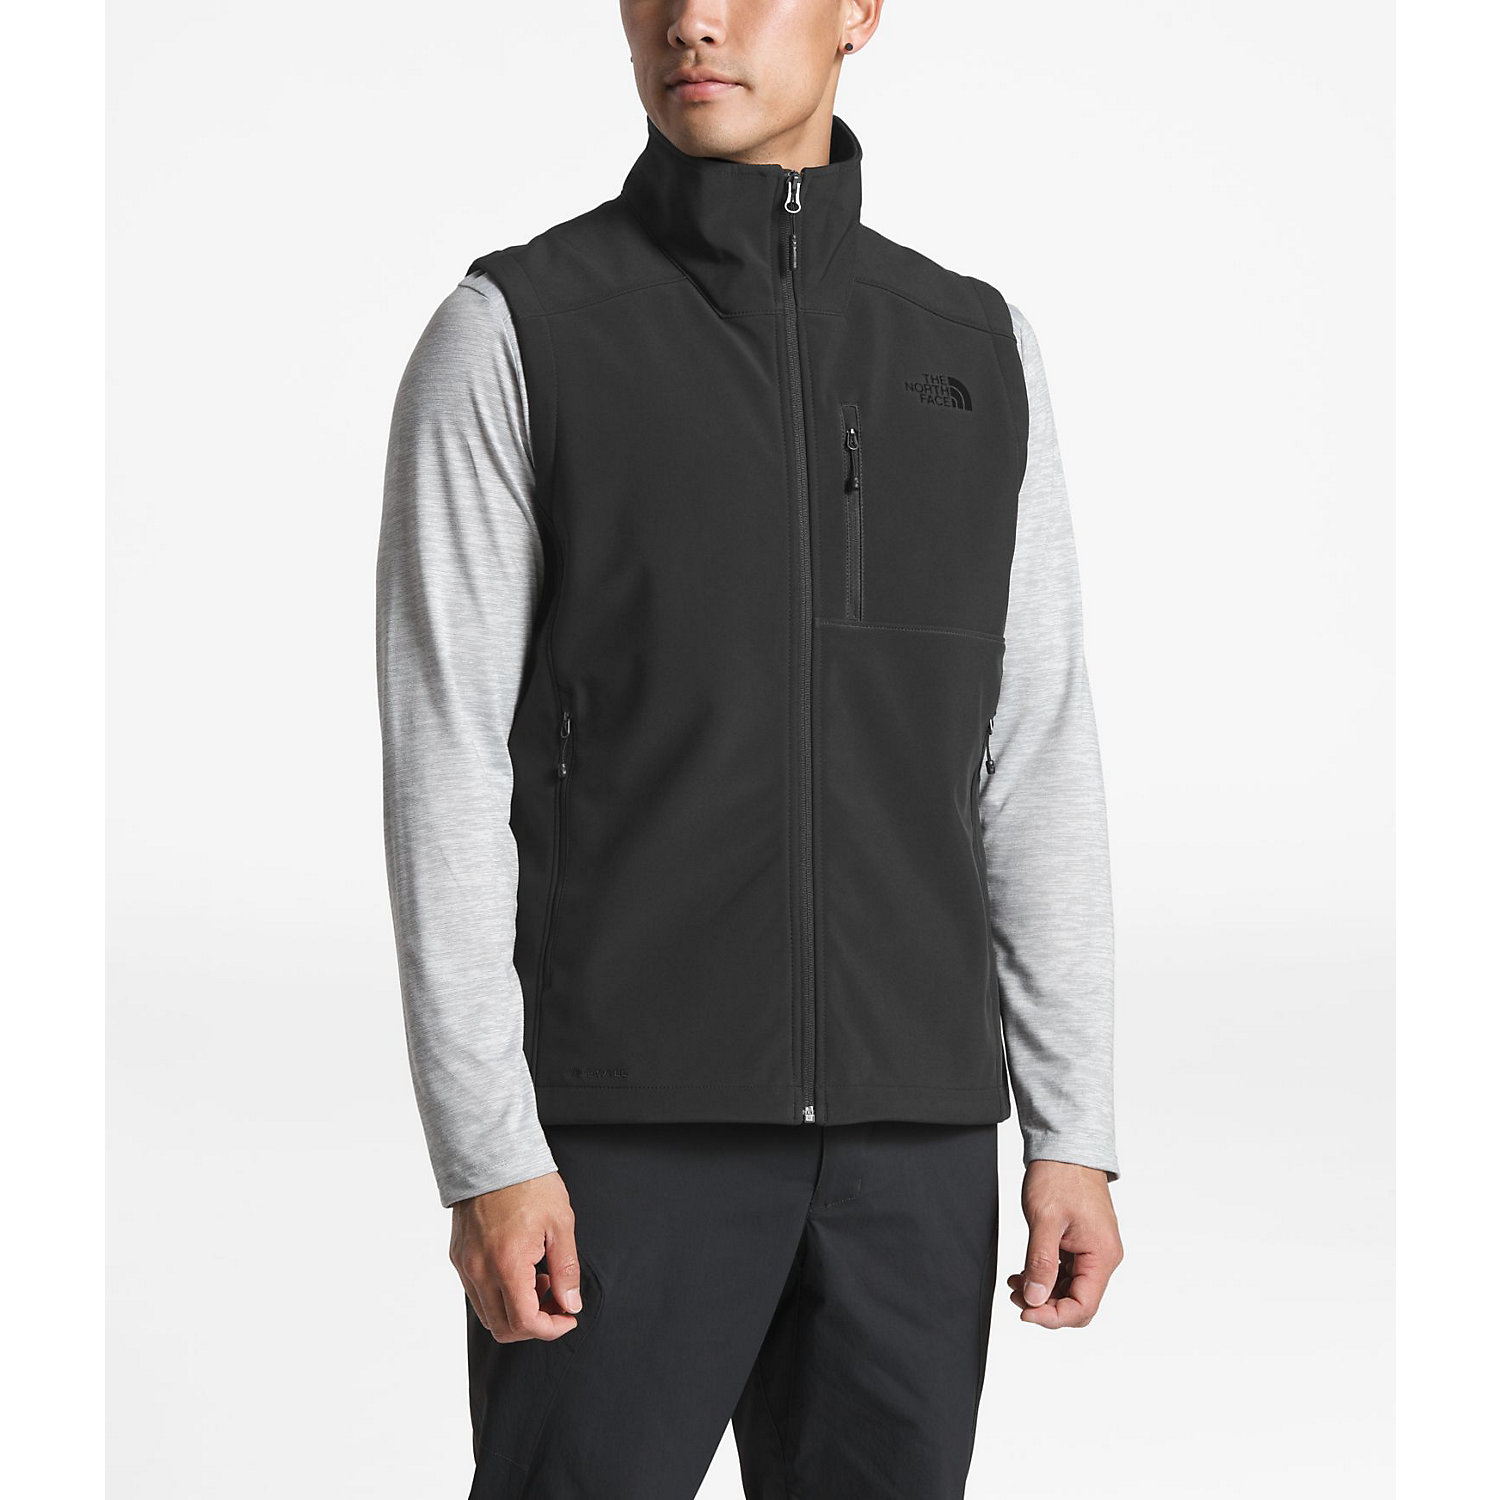 2b95b31af The North Face Men's Apex Bionic 2 Vest